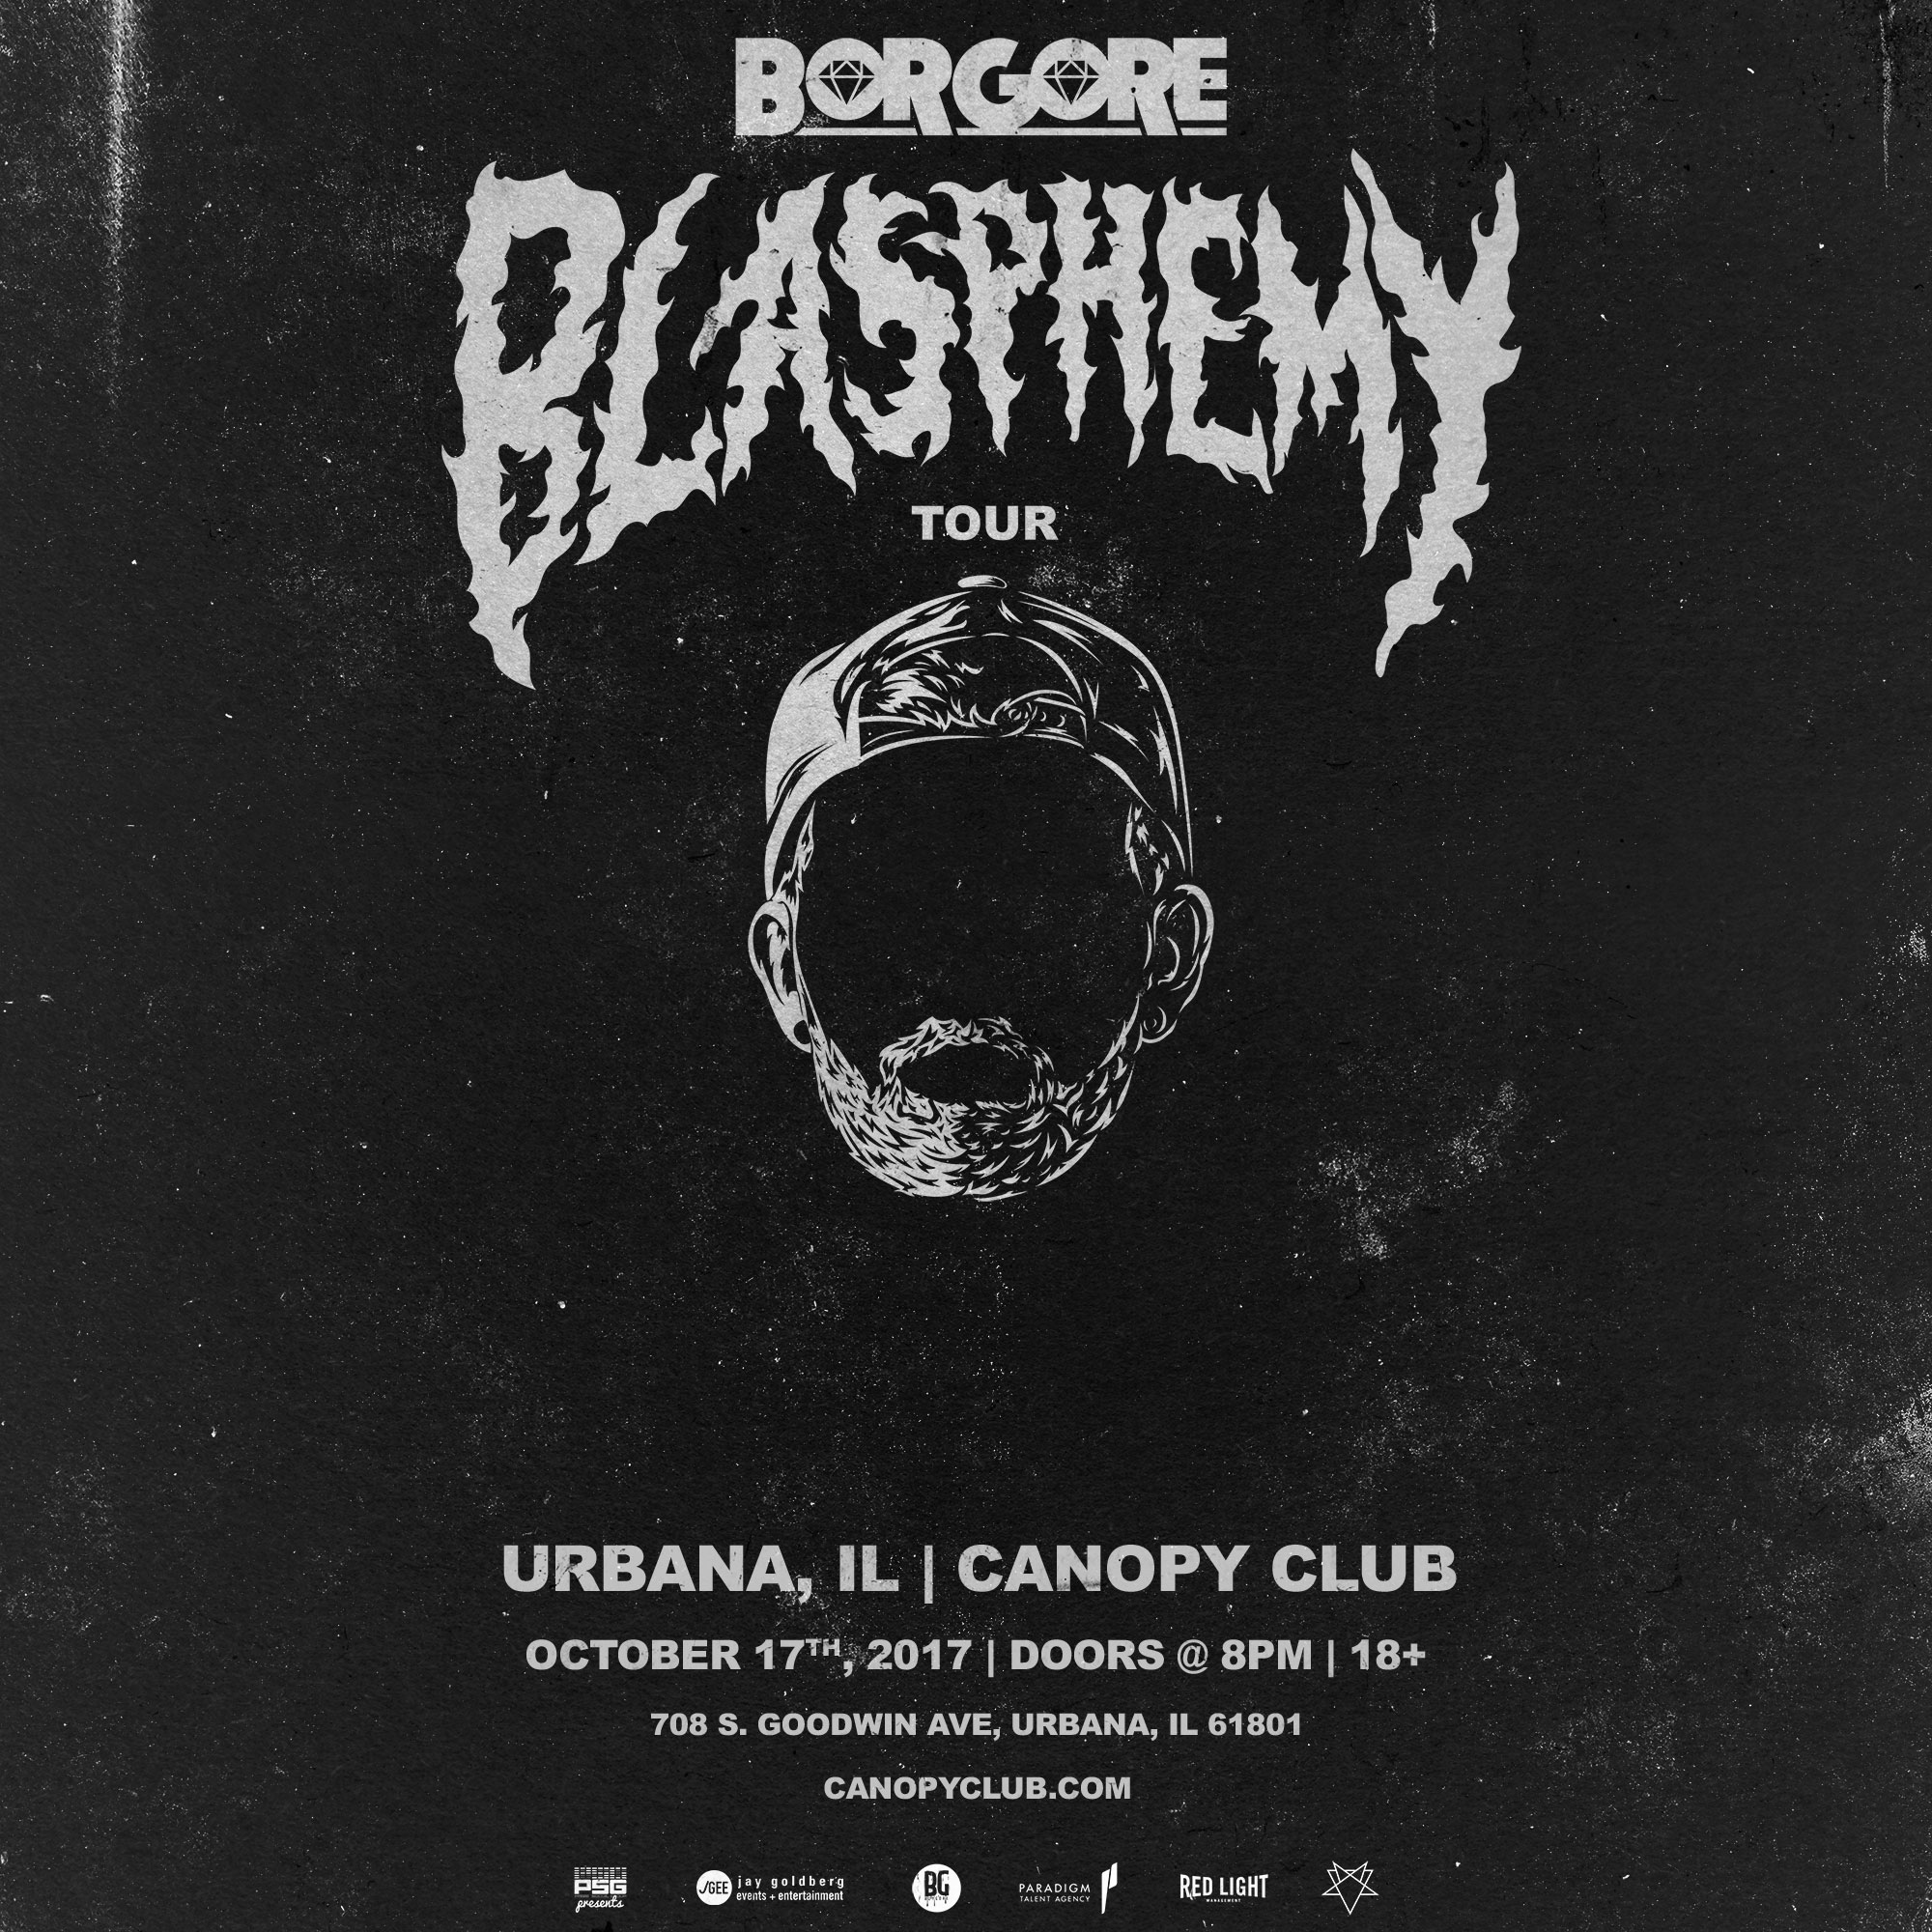 Description  sc 1 st  Eventbrite & Borgore @ Canopy Club Tickets Tue Oct 17 2017 at 8:00 PM ...